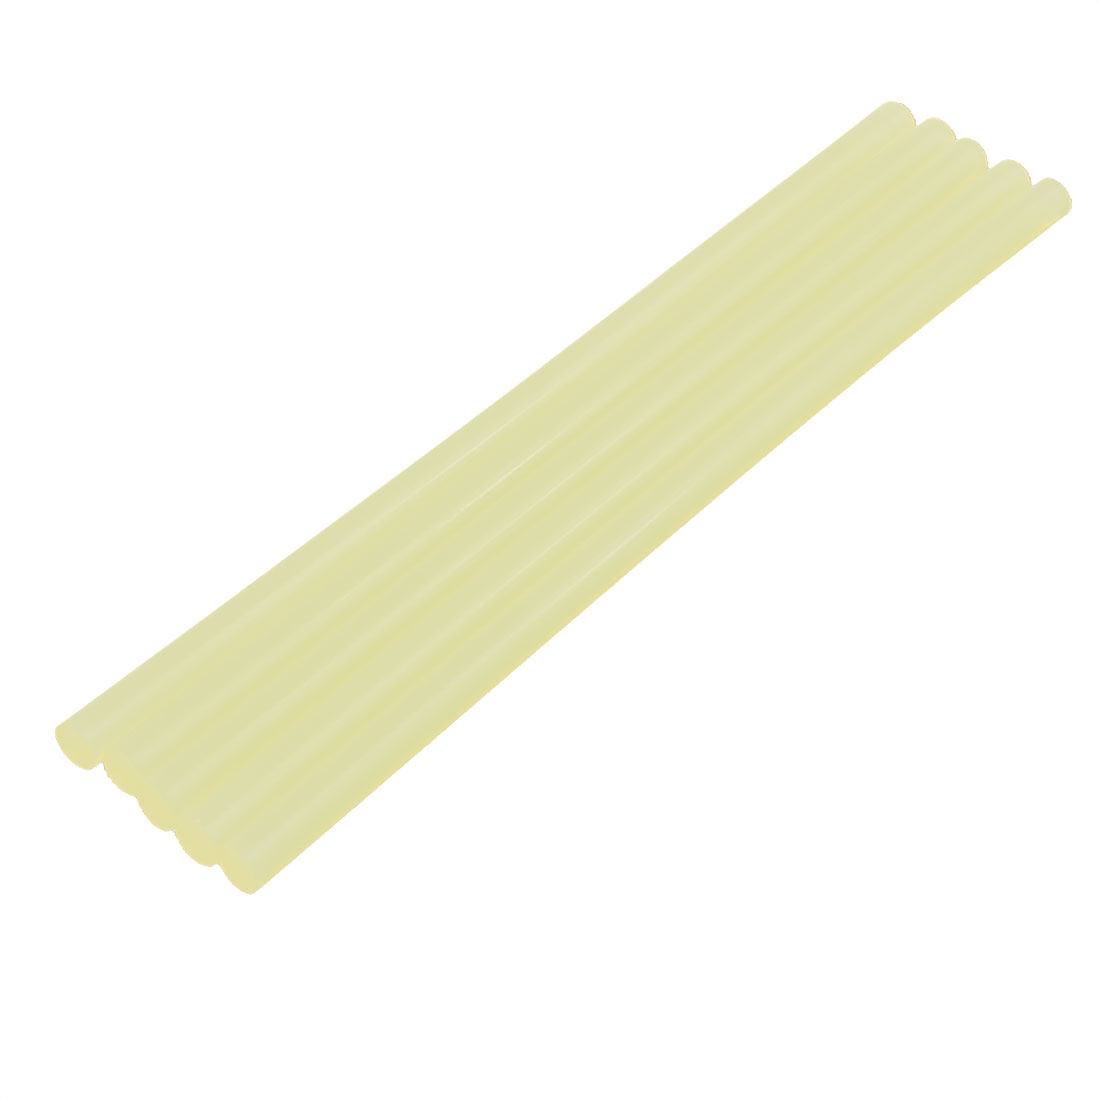 5 Pcs 11mm x 285mm Hot Melt Glue Adhesive Stick Yellow for Electric Tool Heating Gun